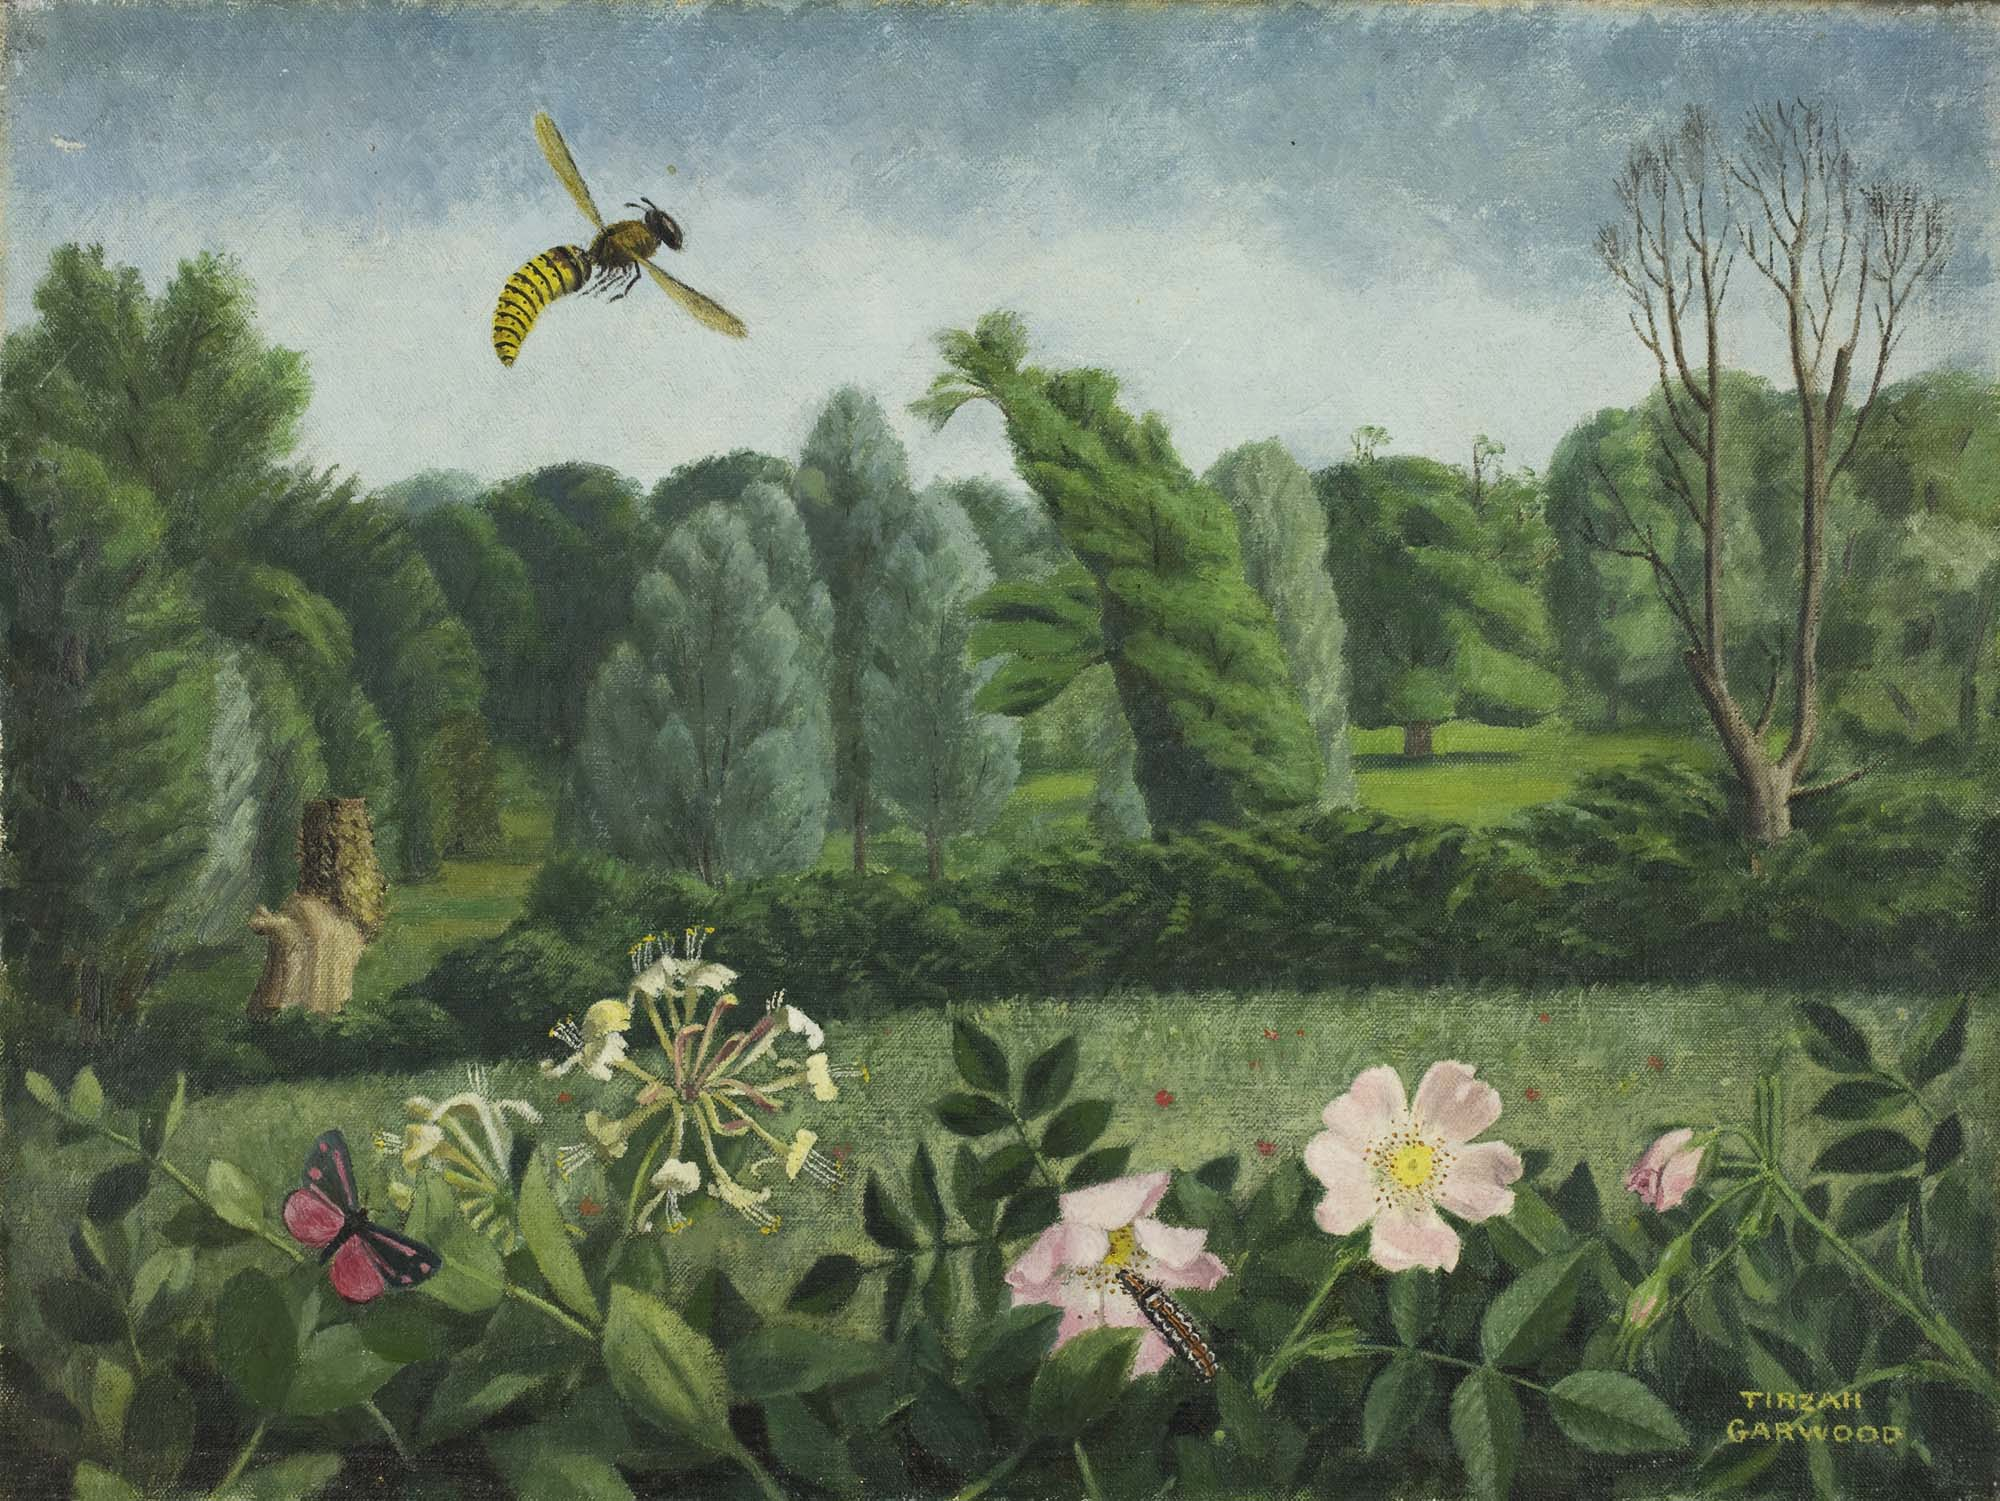 a painting of a hornet flying over the top of roses with tress and fields in the background